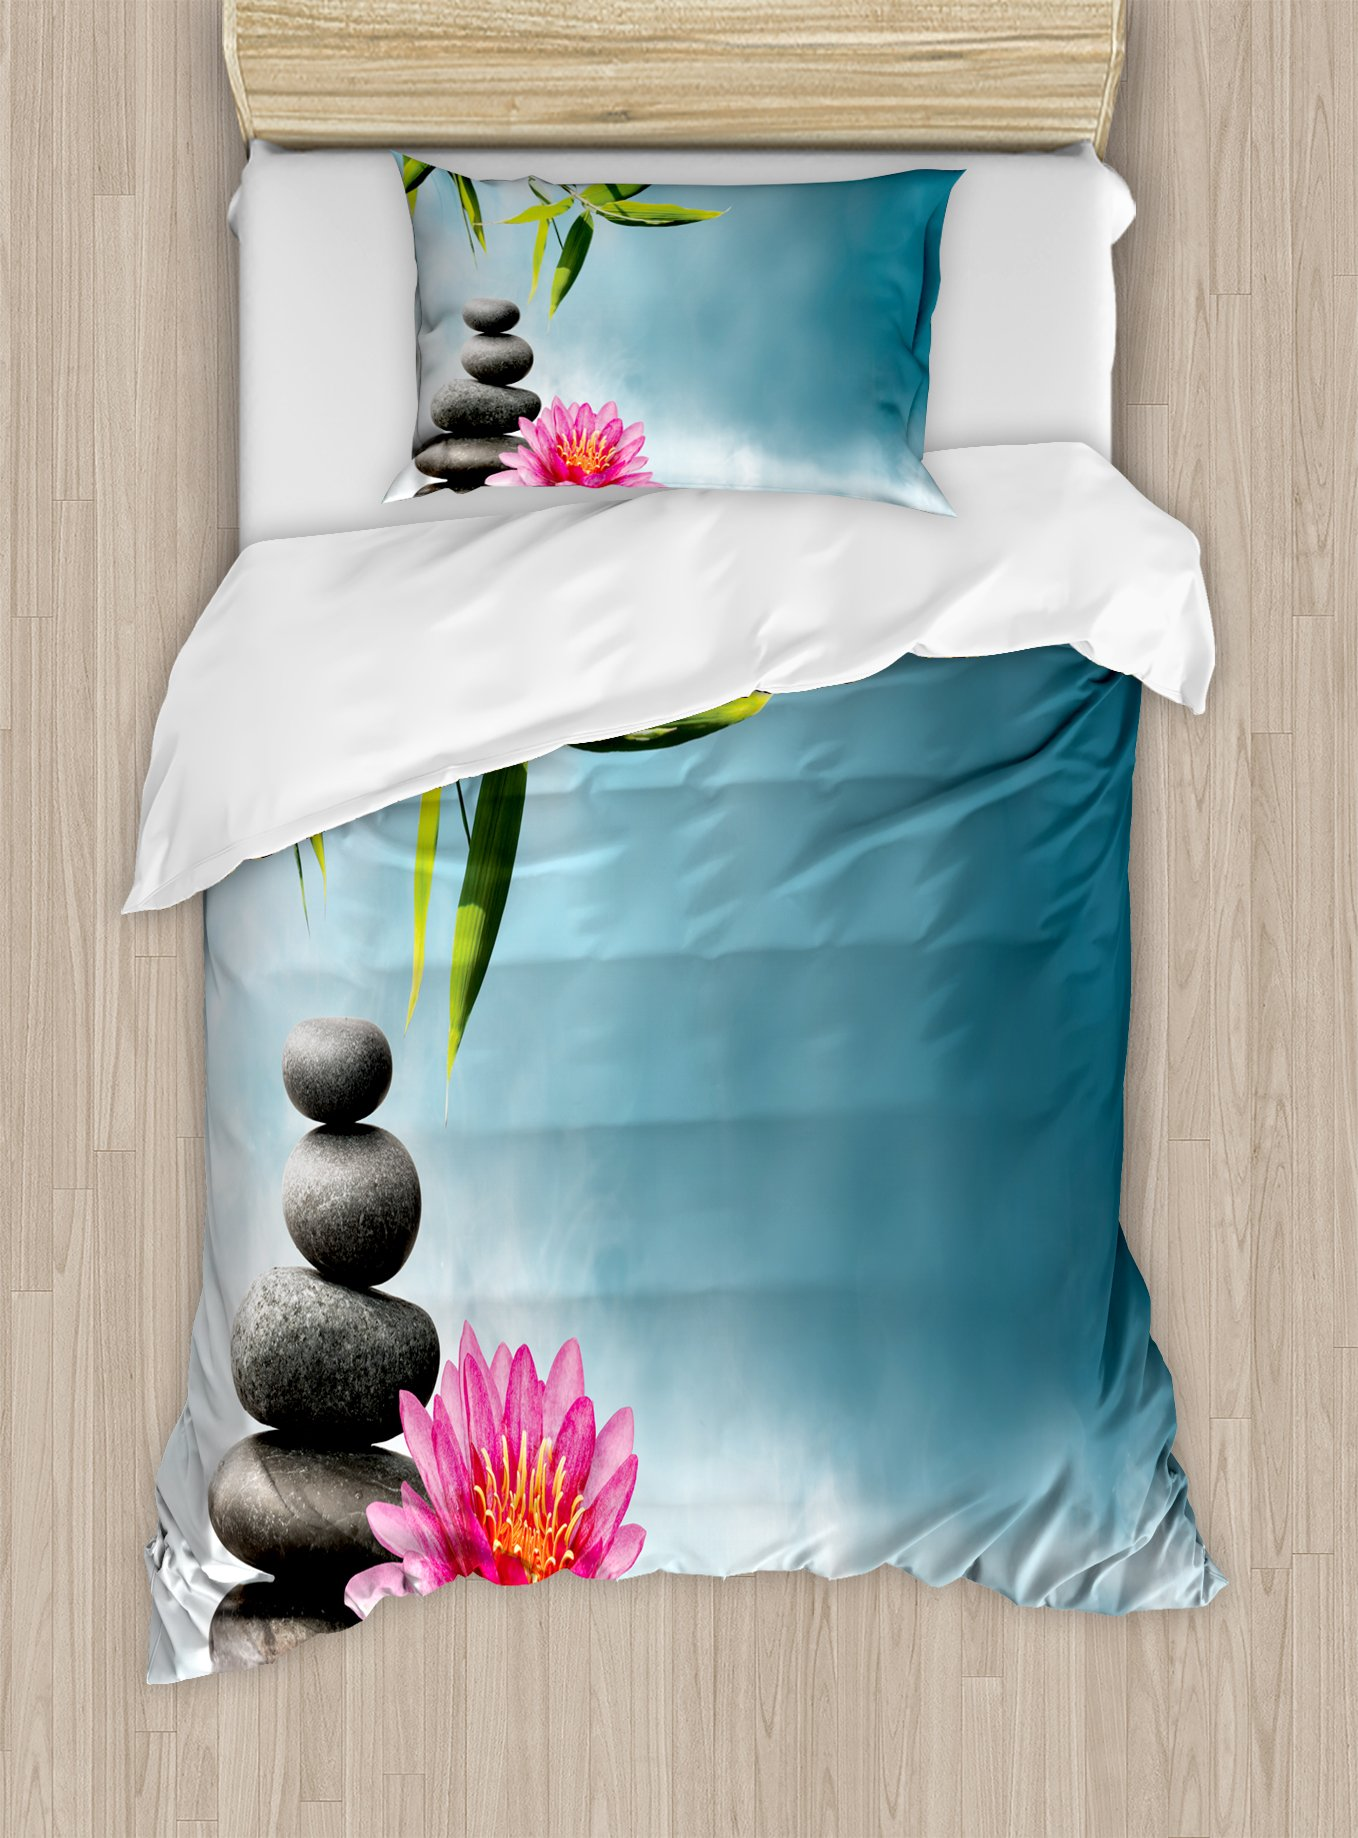 Ambesonne Spa Duvet Cover Set Twin Size, Spa Theme with Lily Lotus Flower and Rocks Yoga Style Purifying Your Soul Theme, Decorative 2 Piece Bedding Set with 1 Pillow Sham, Blue Pink Green